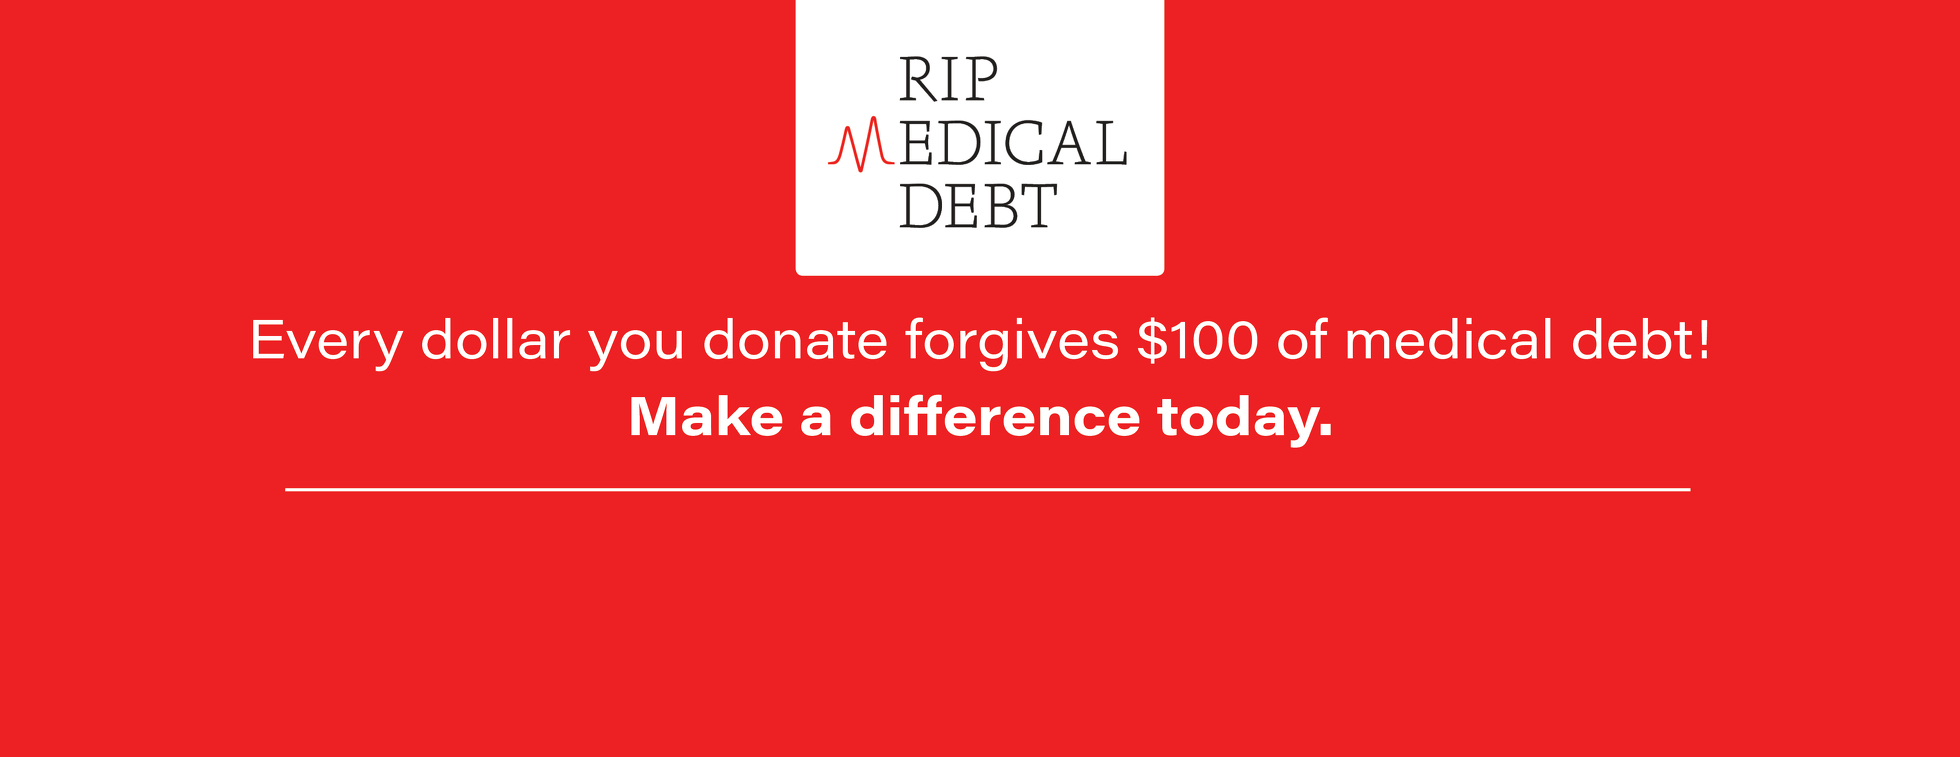 Neighborhood Church's Campaign to Forgive $1.5M of Medical Debt in Mecklenburg & Cabarrus Counties